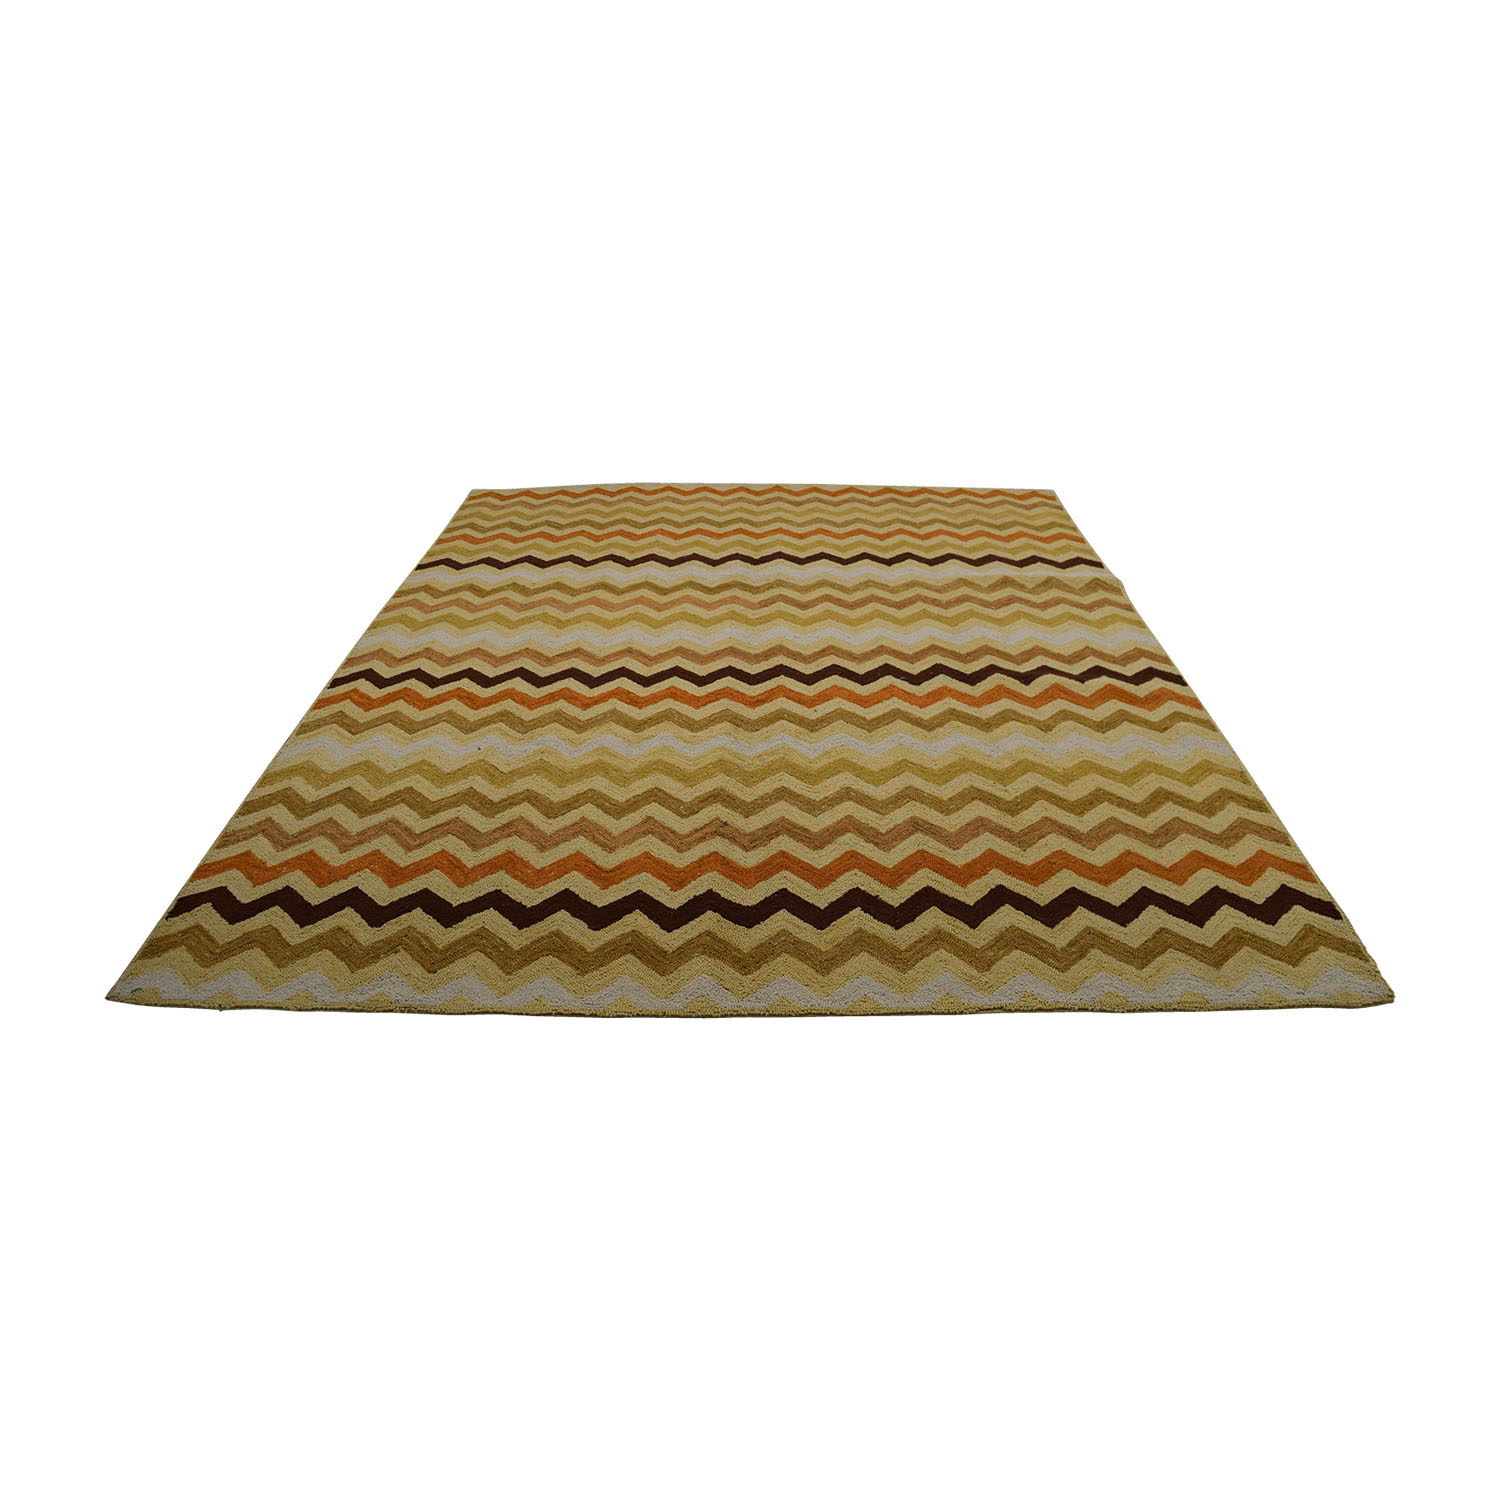 Obeetee Hand Hooked Summit Beige Tan Brown and Orange Rug / Decor